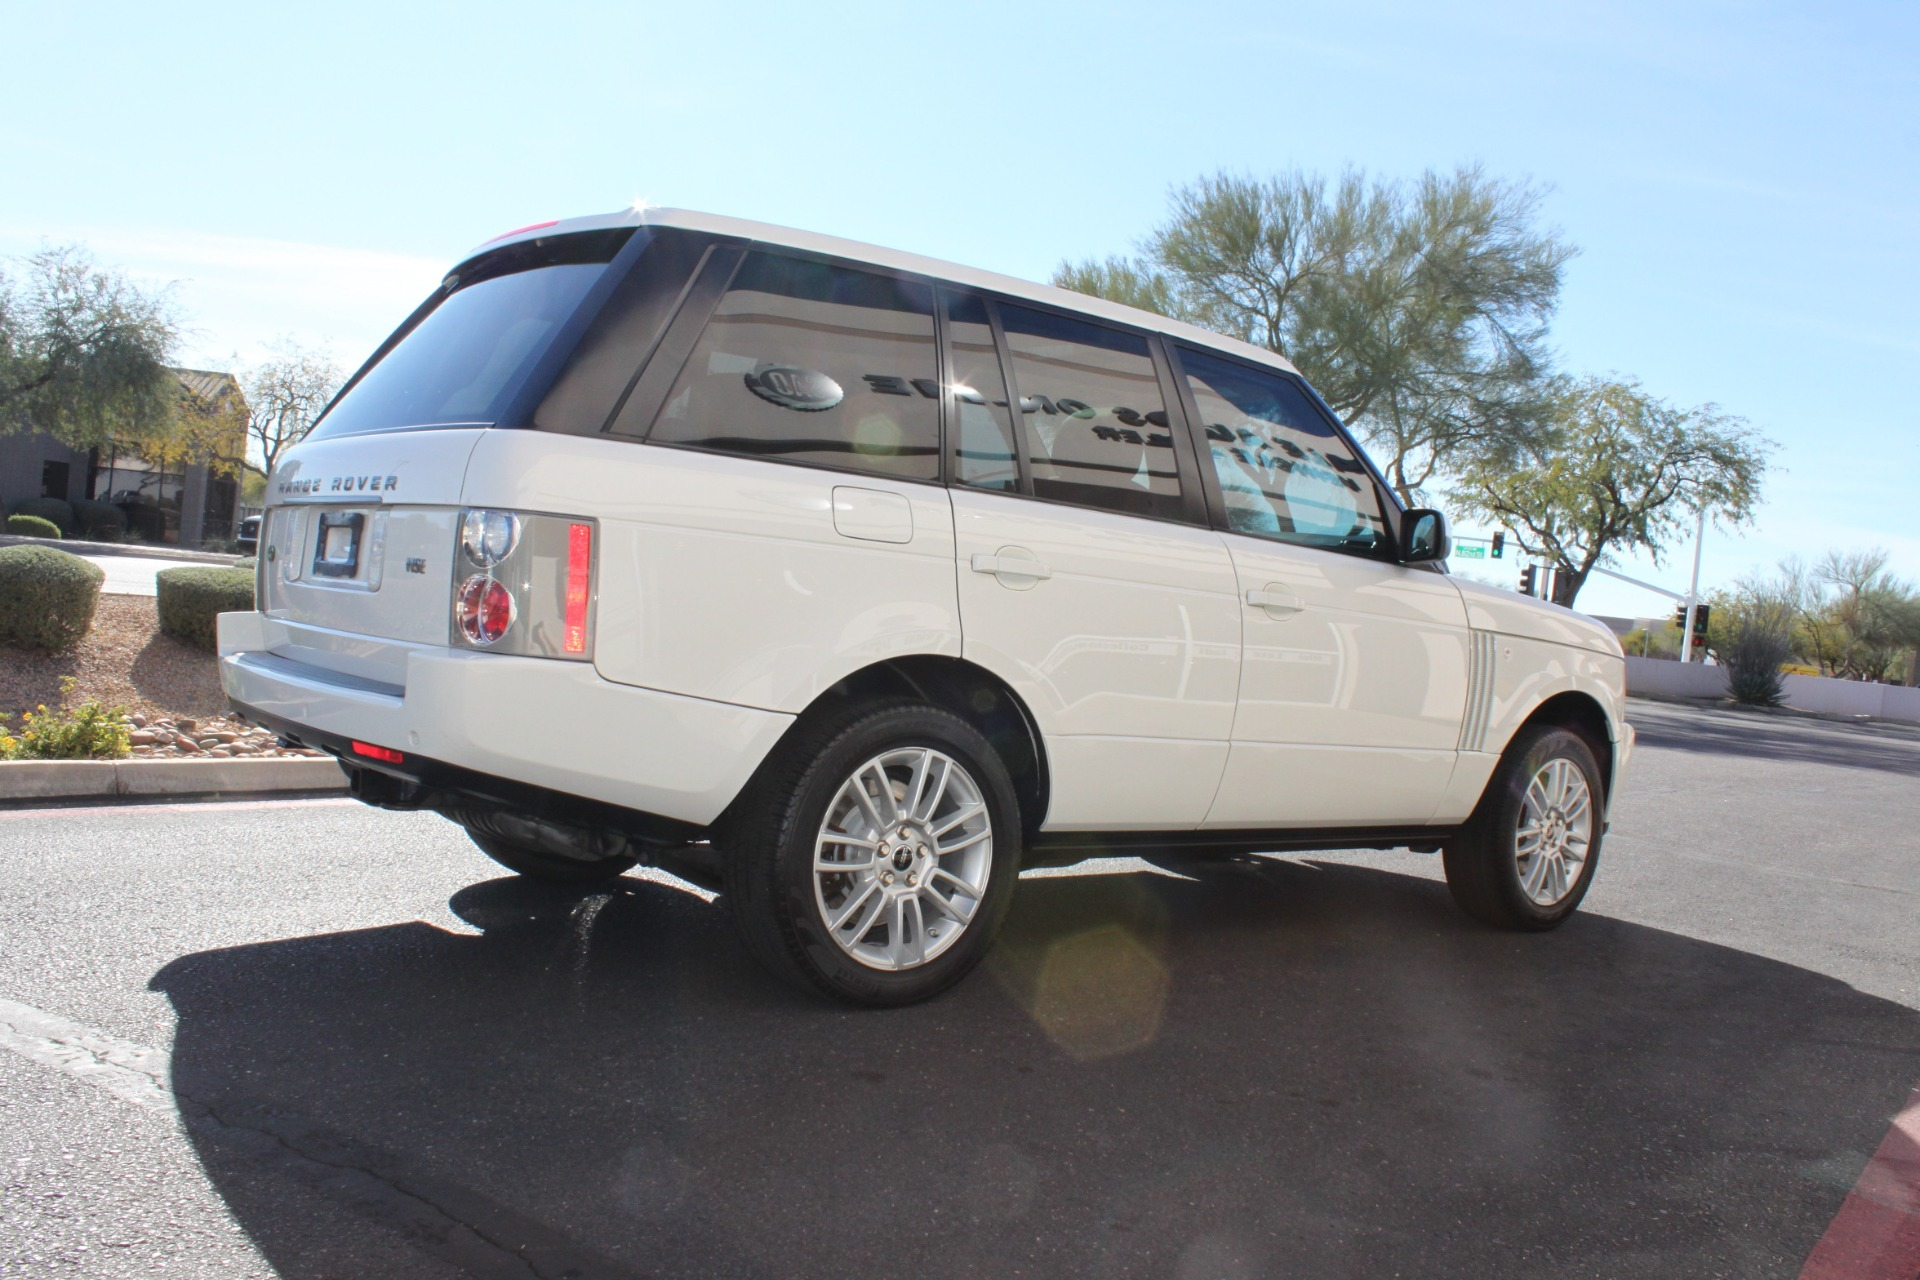 Used-2007-Land-Rover-Range-Rover-HSE-Toyota